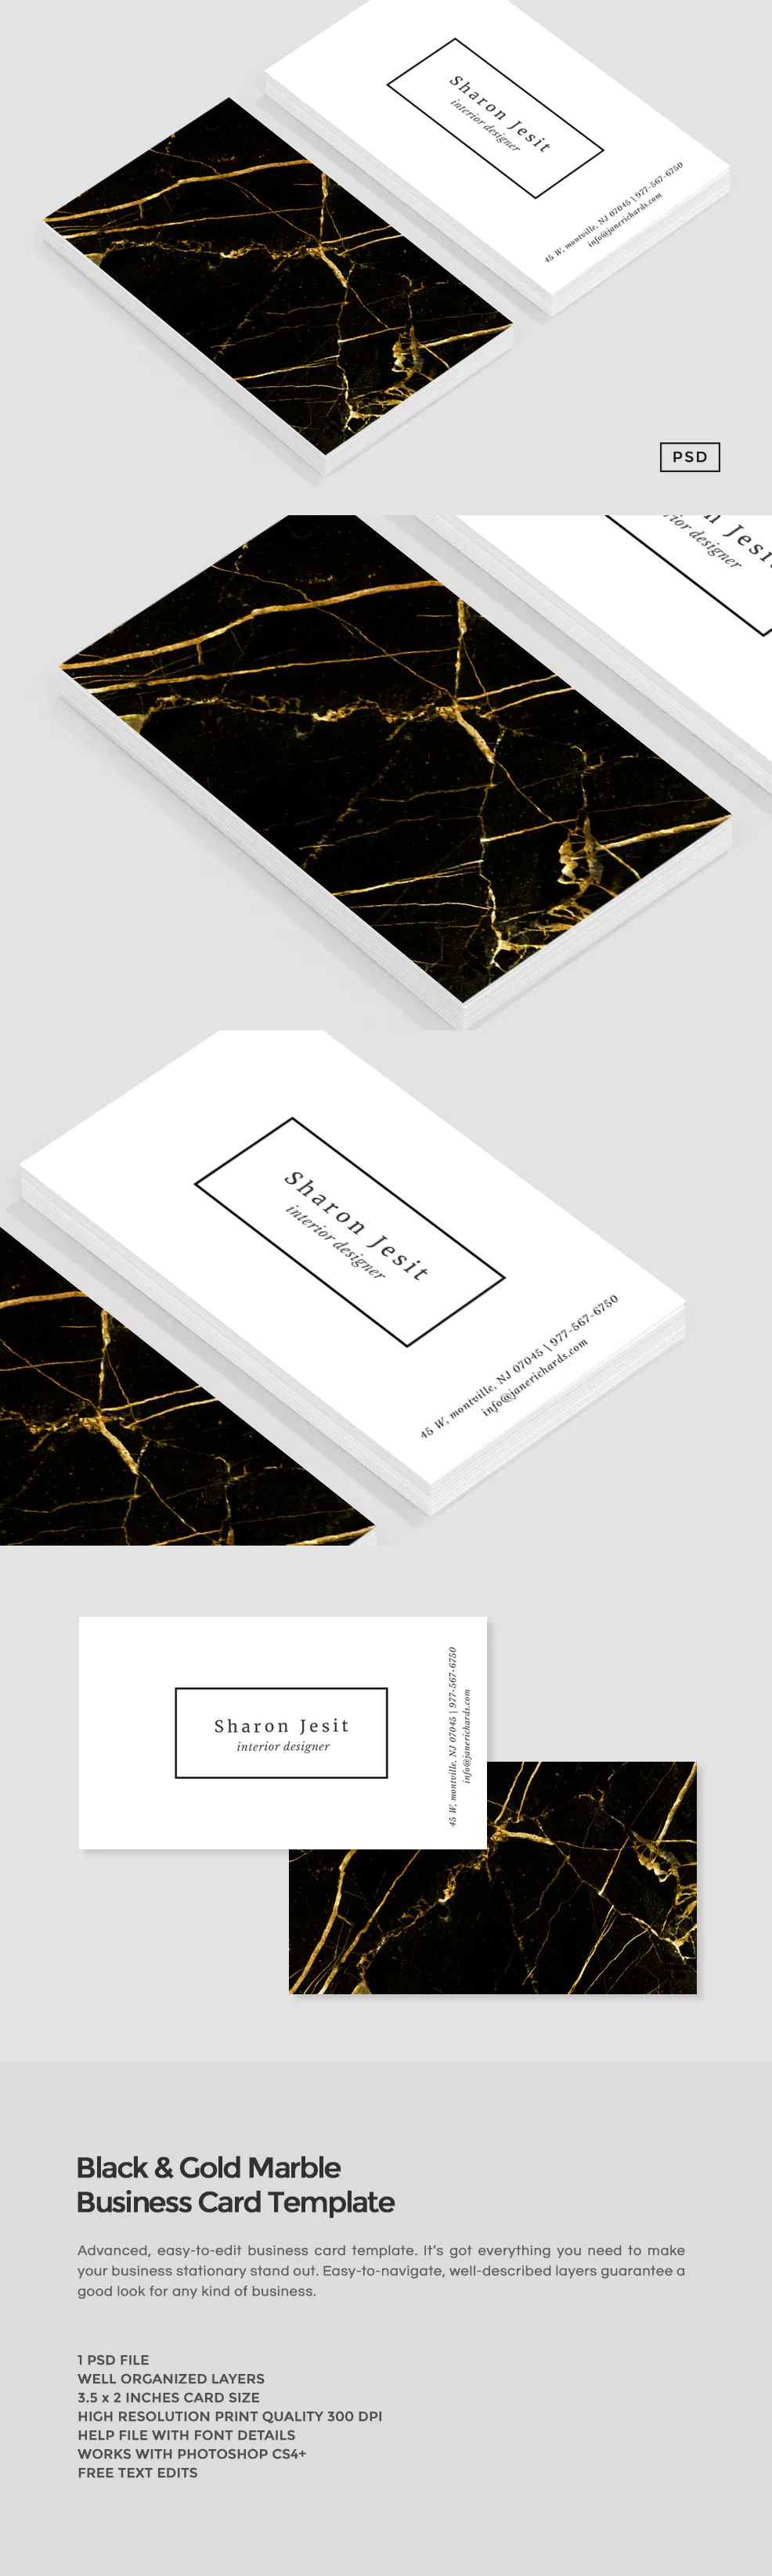 Black gold marble business card template psd art 3 pinterest black gold marble business card template psd reheart Images